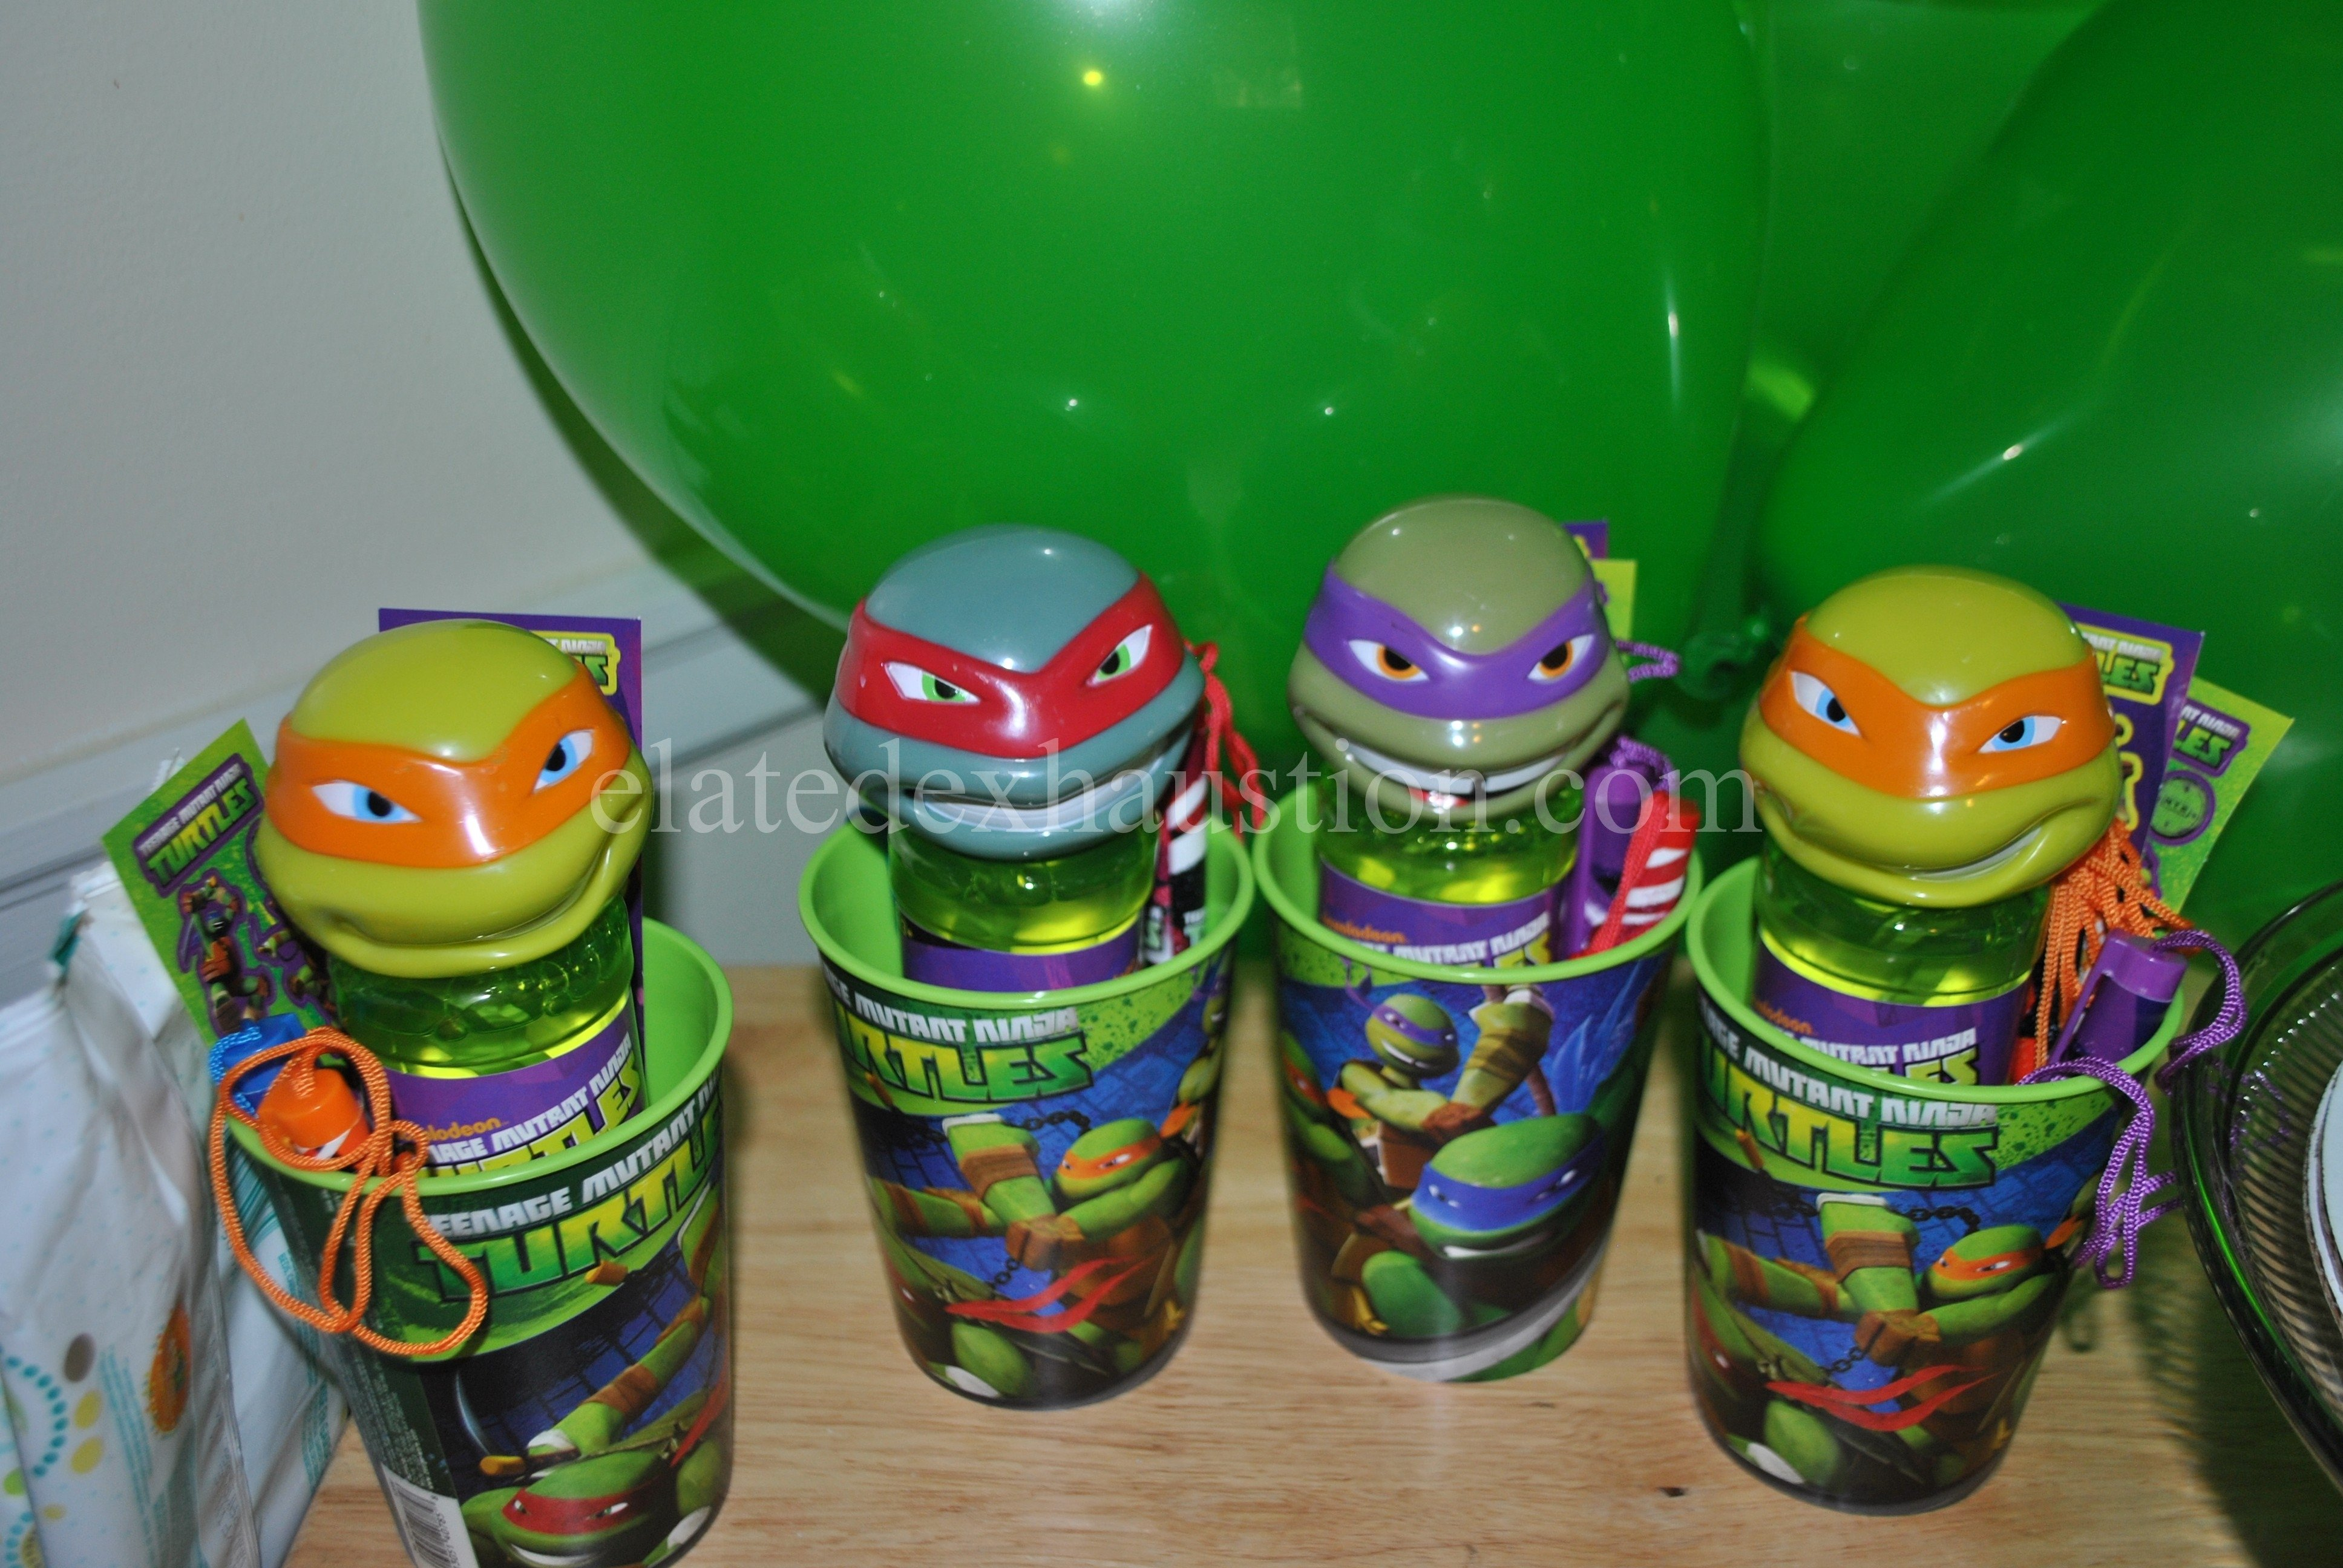 10 Awesome Teenage Mutant Ninja Turtles Party Favor Ideas the fourth birthday party ninja turtle style elated exhaustion 1